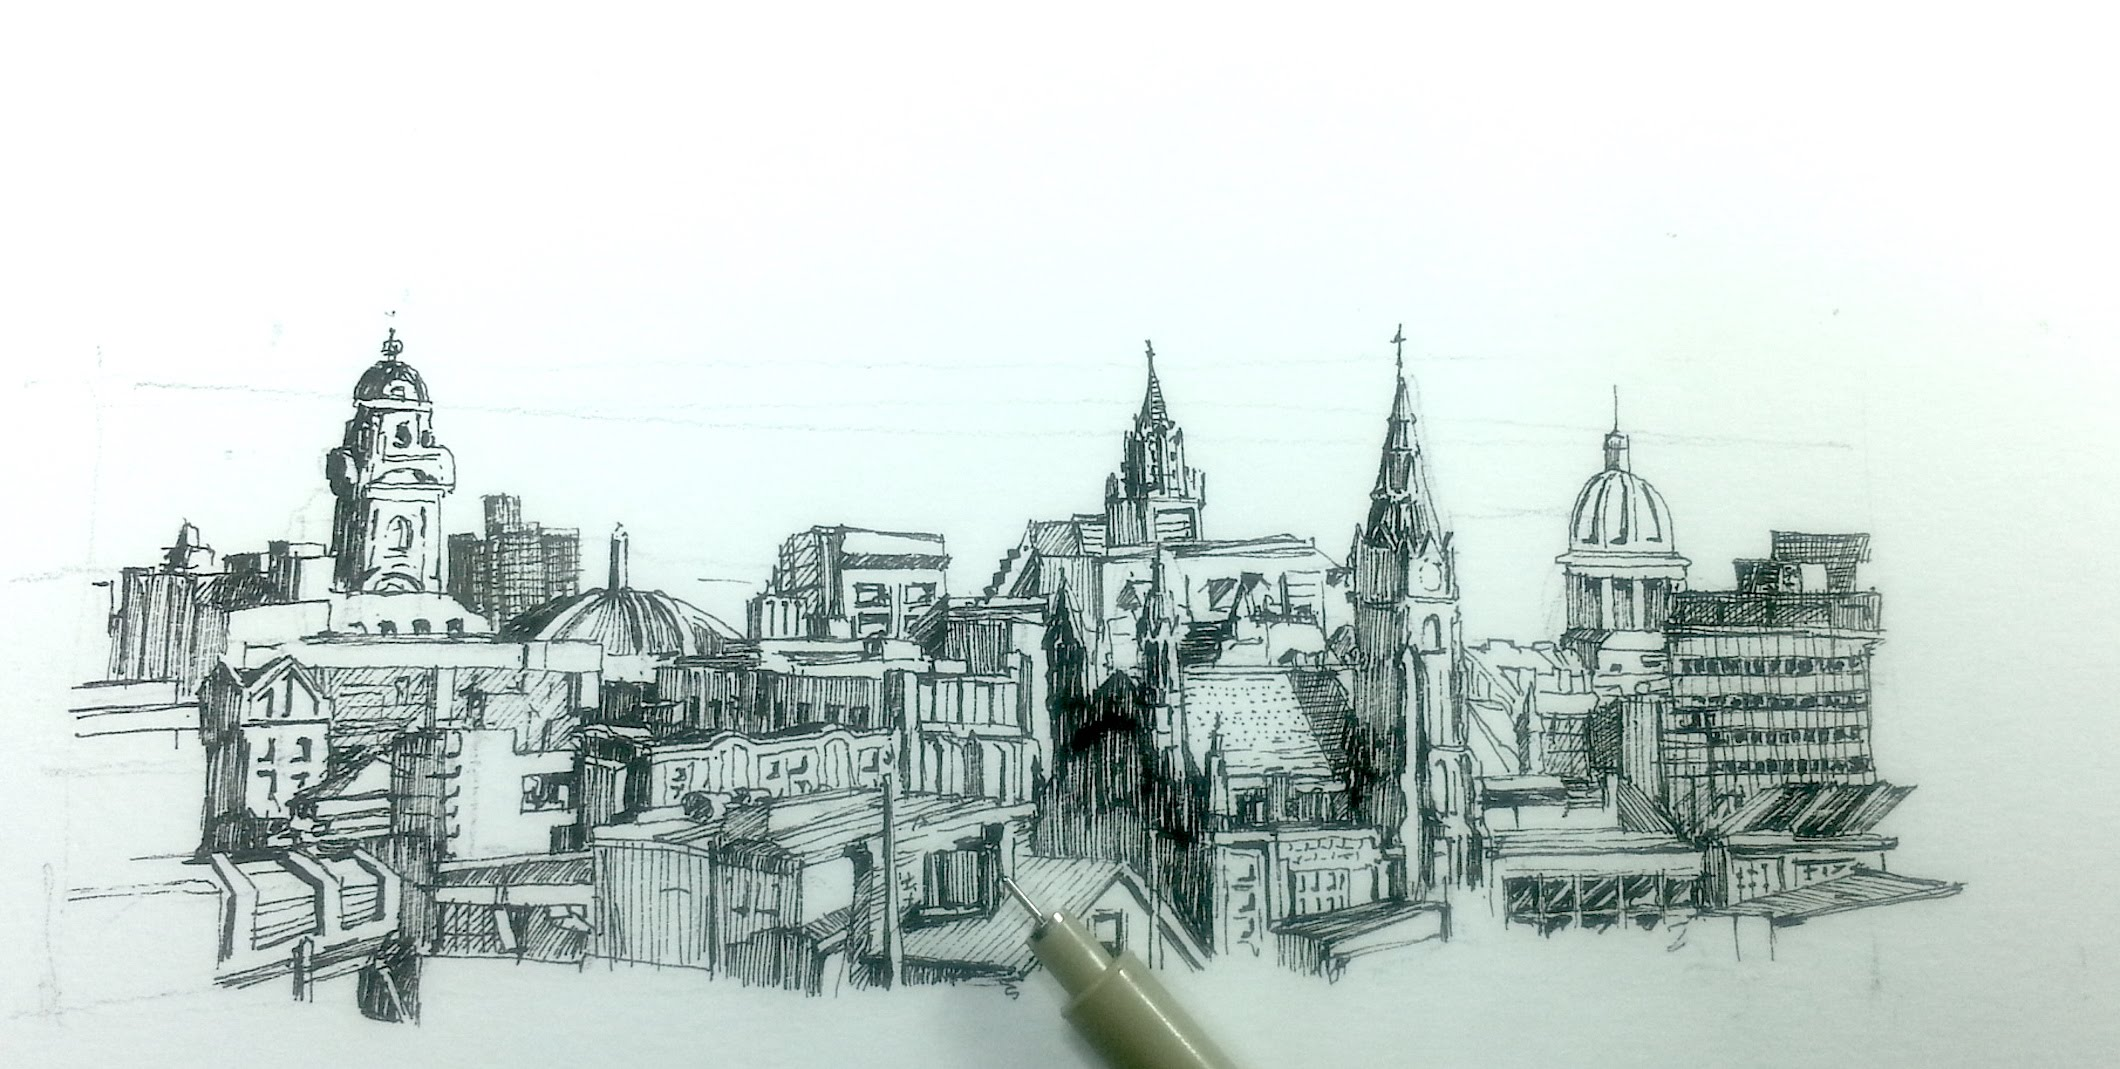 Drawn scenic cityscape Skyline buildings  city with